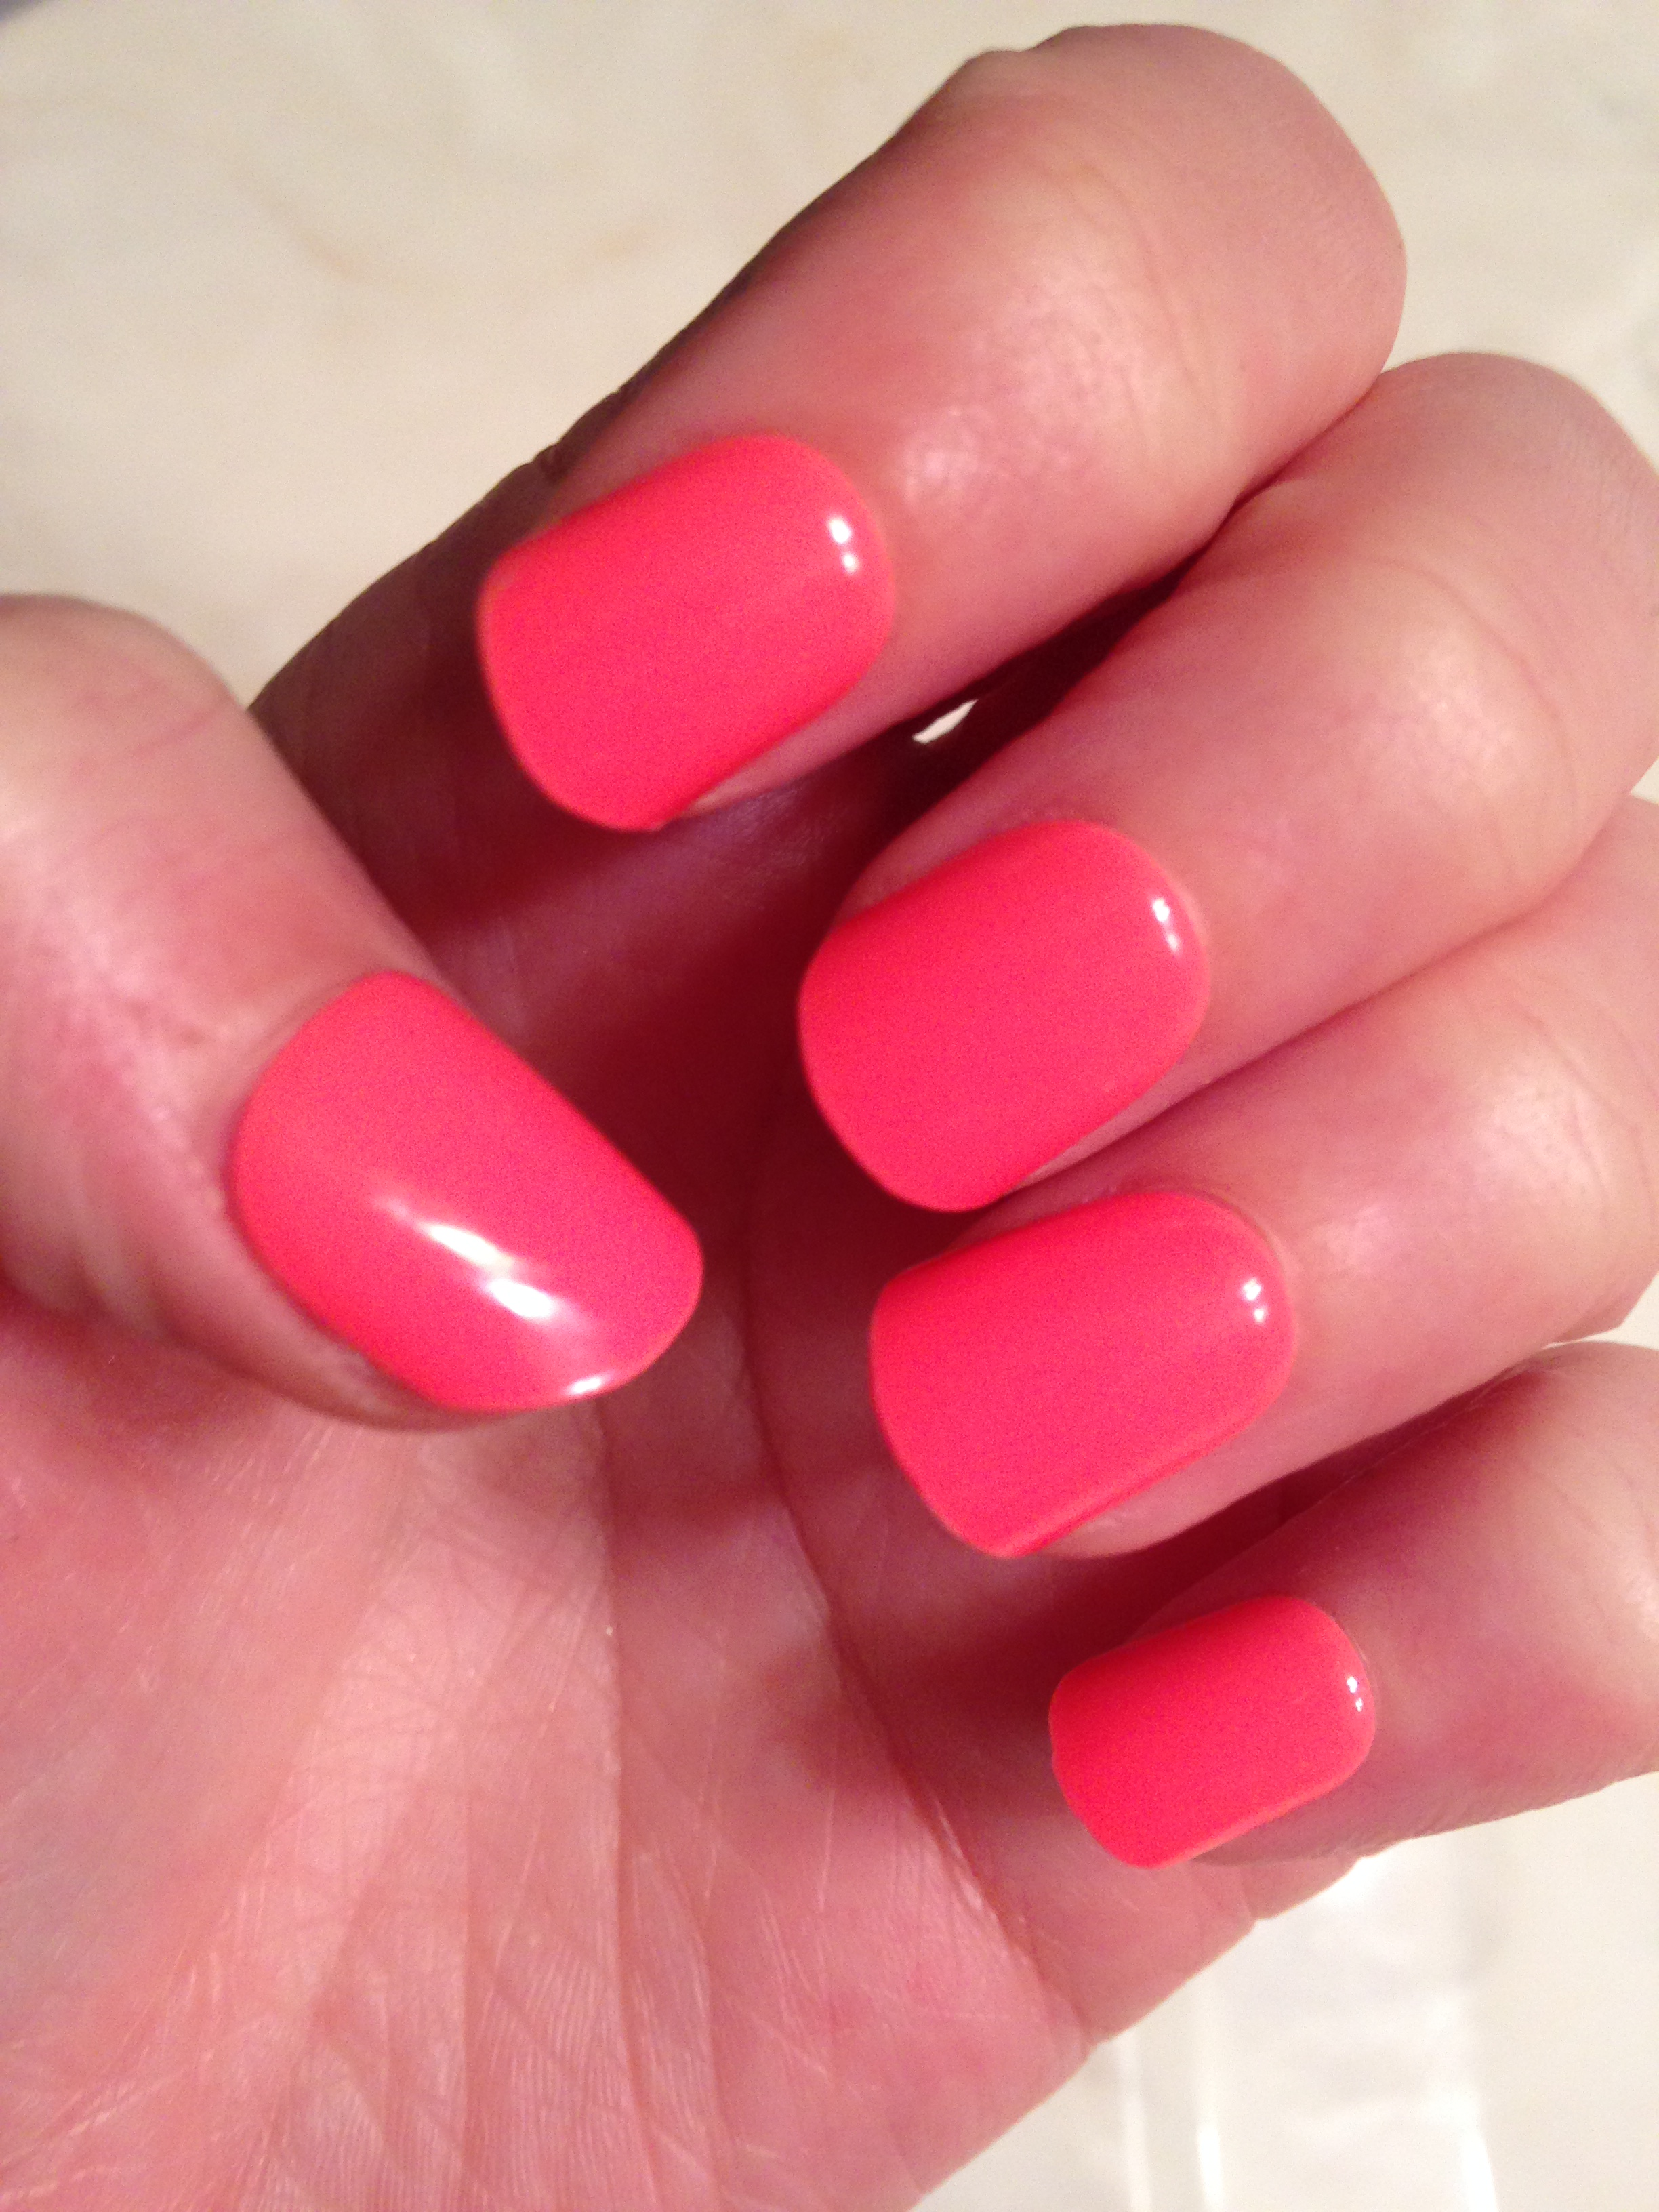 ImPRESS Nails: A Quick & Easy Manicure